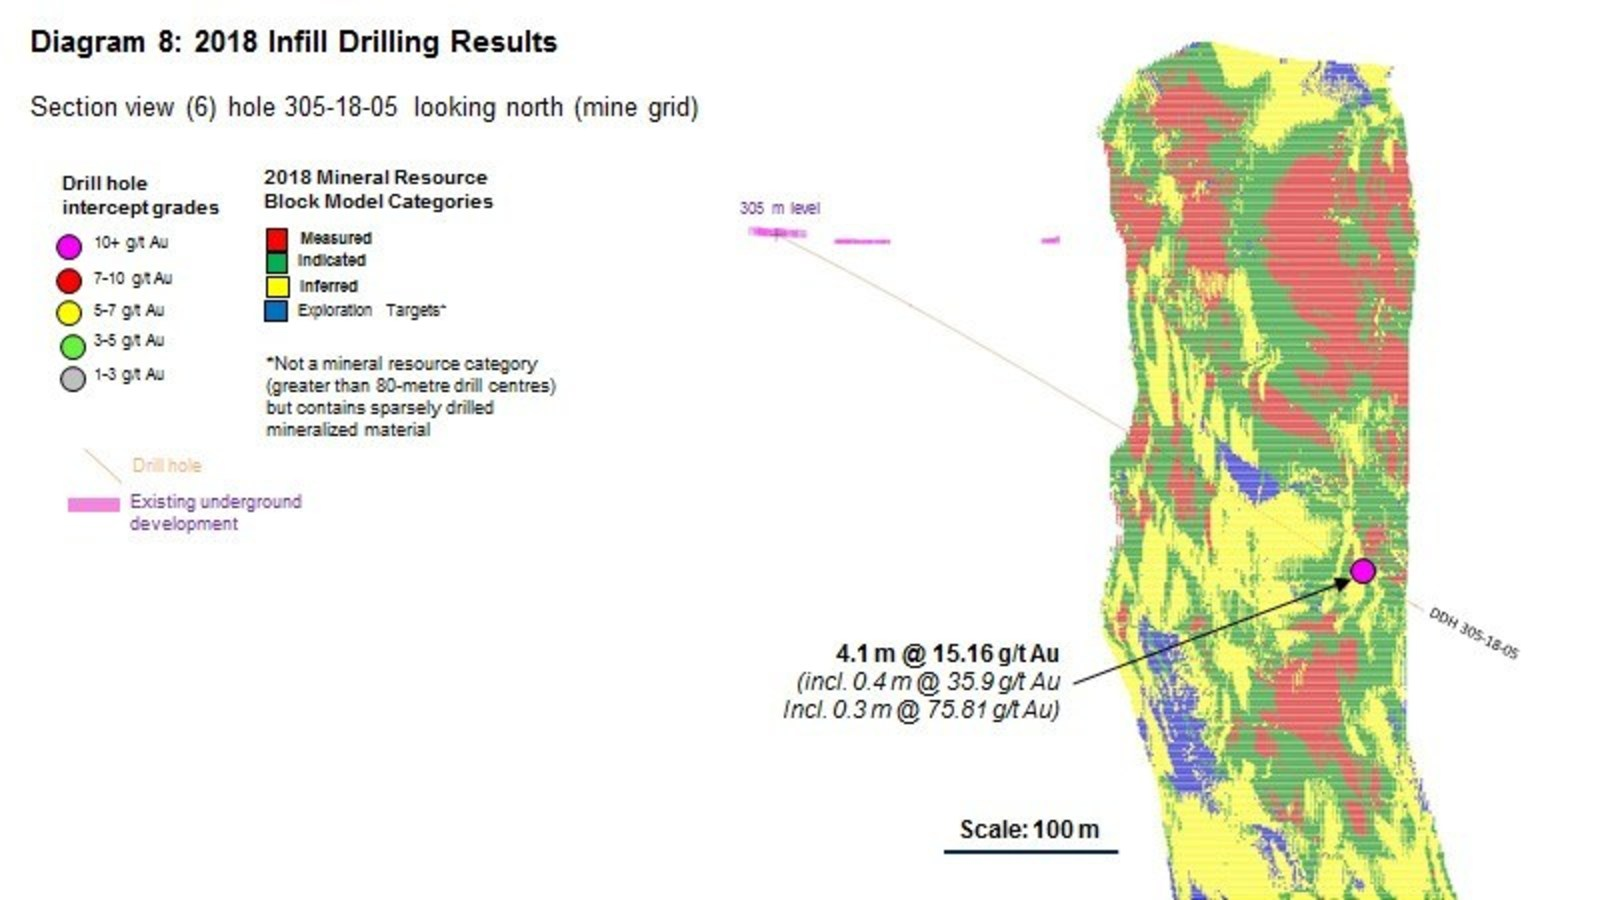 Diagram 8 : 2018 Infill Drilling Results